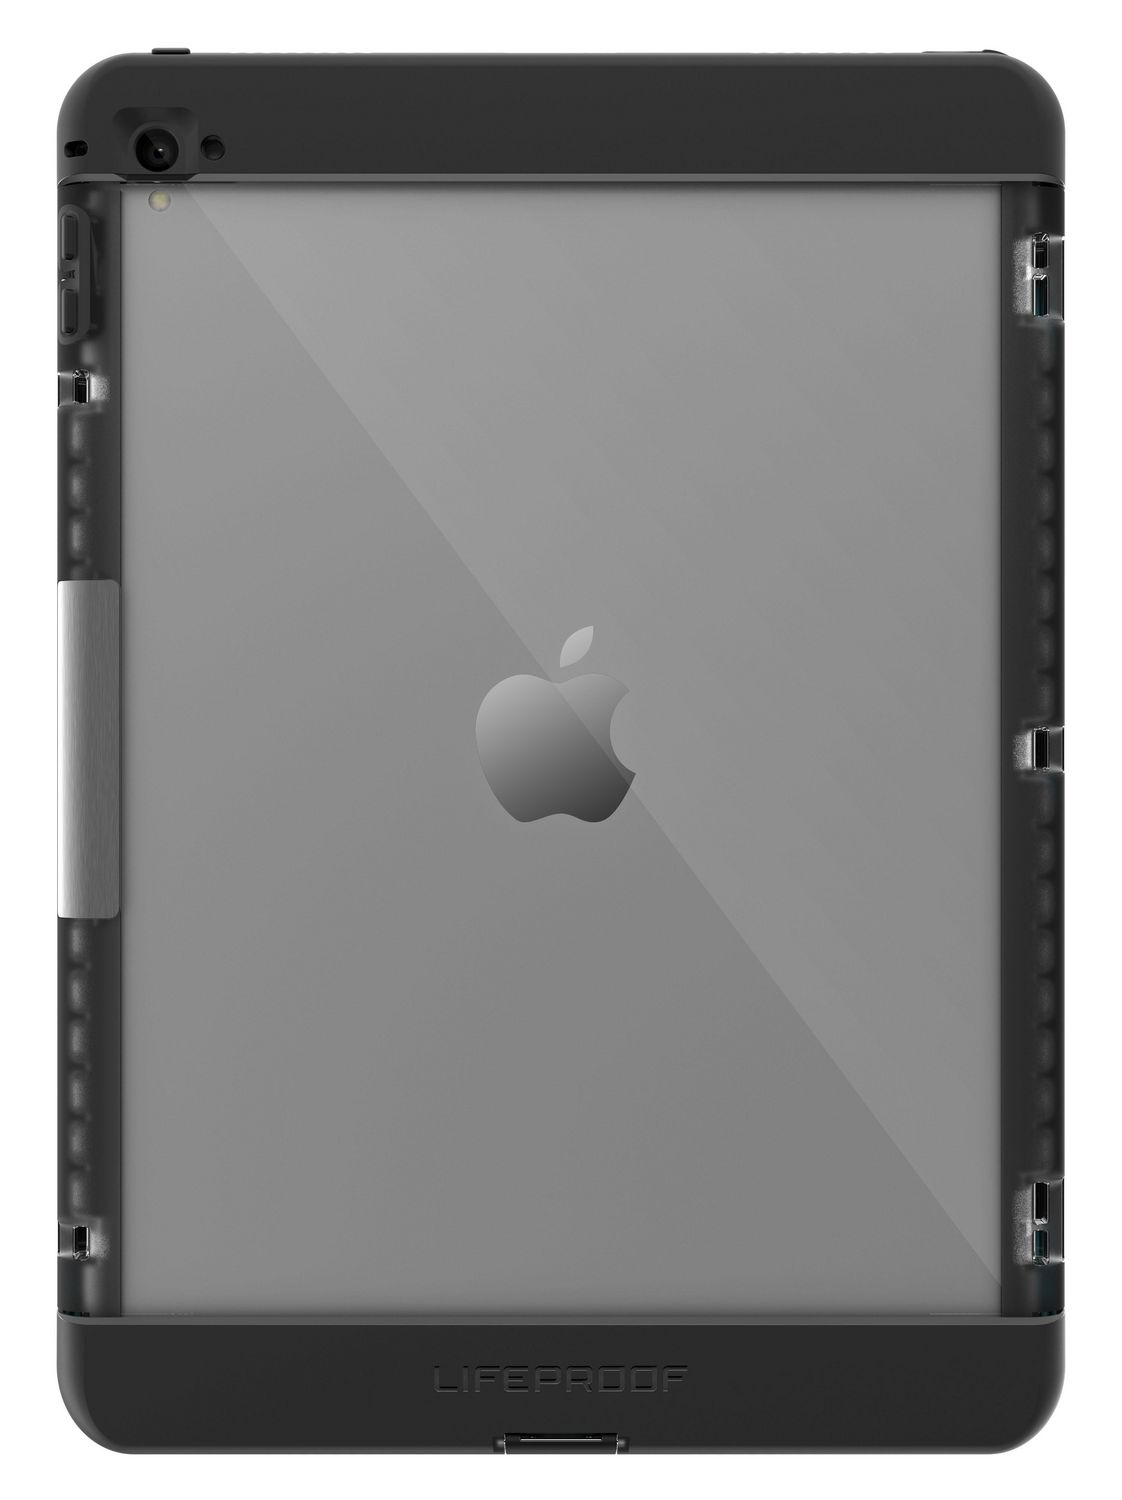 reputable site 7e840 af1a5 LifeProof Nuud Case for iPad PRO 9.7